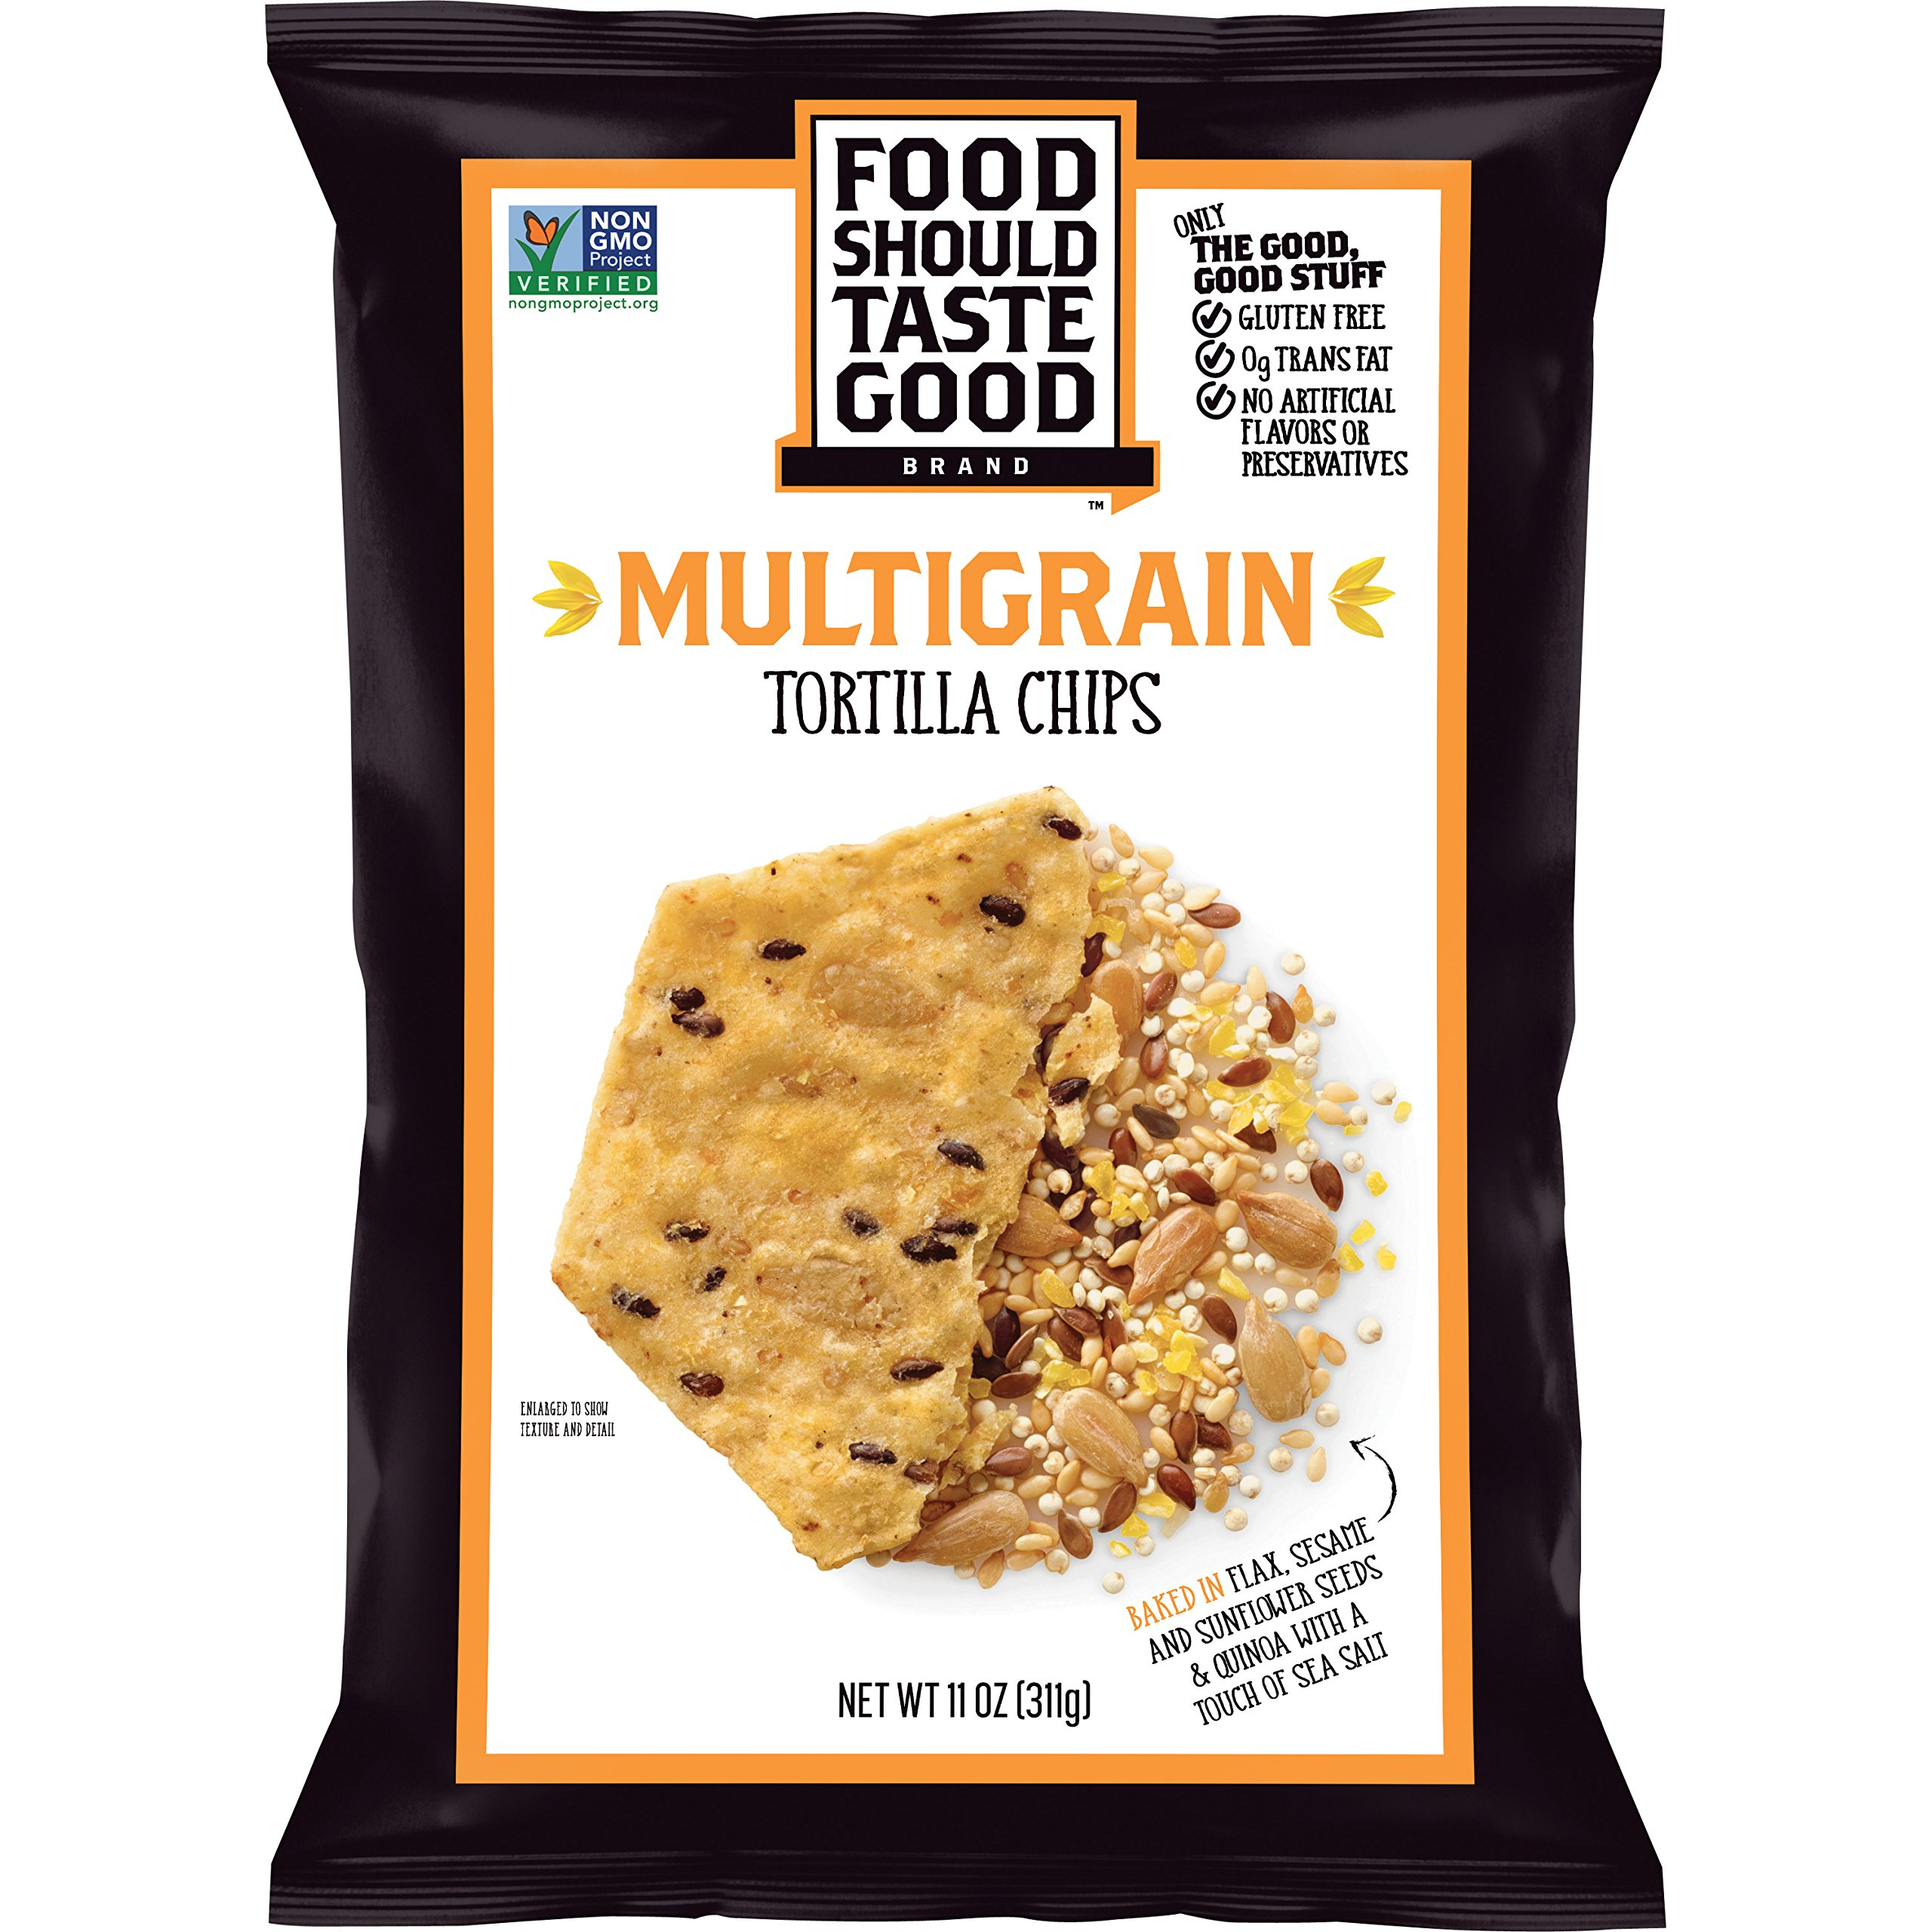 Food Should Taste Good, Tortilla Chips, Multigrain, Gluten Free Chips, 11 oz